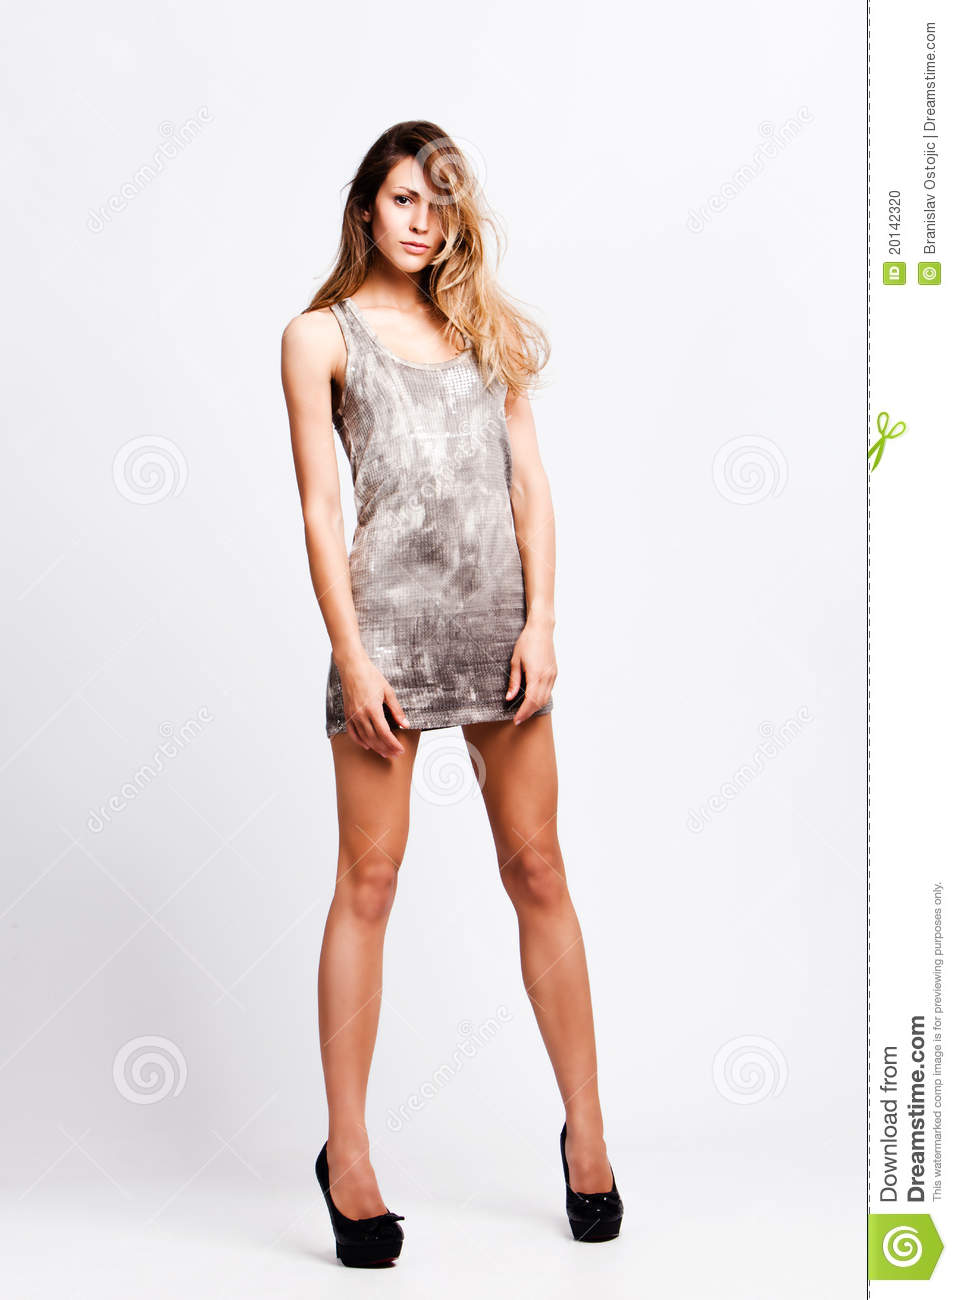 Woman In Short Dress And High Heel Shoes Stock Photo - Image: 20142320